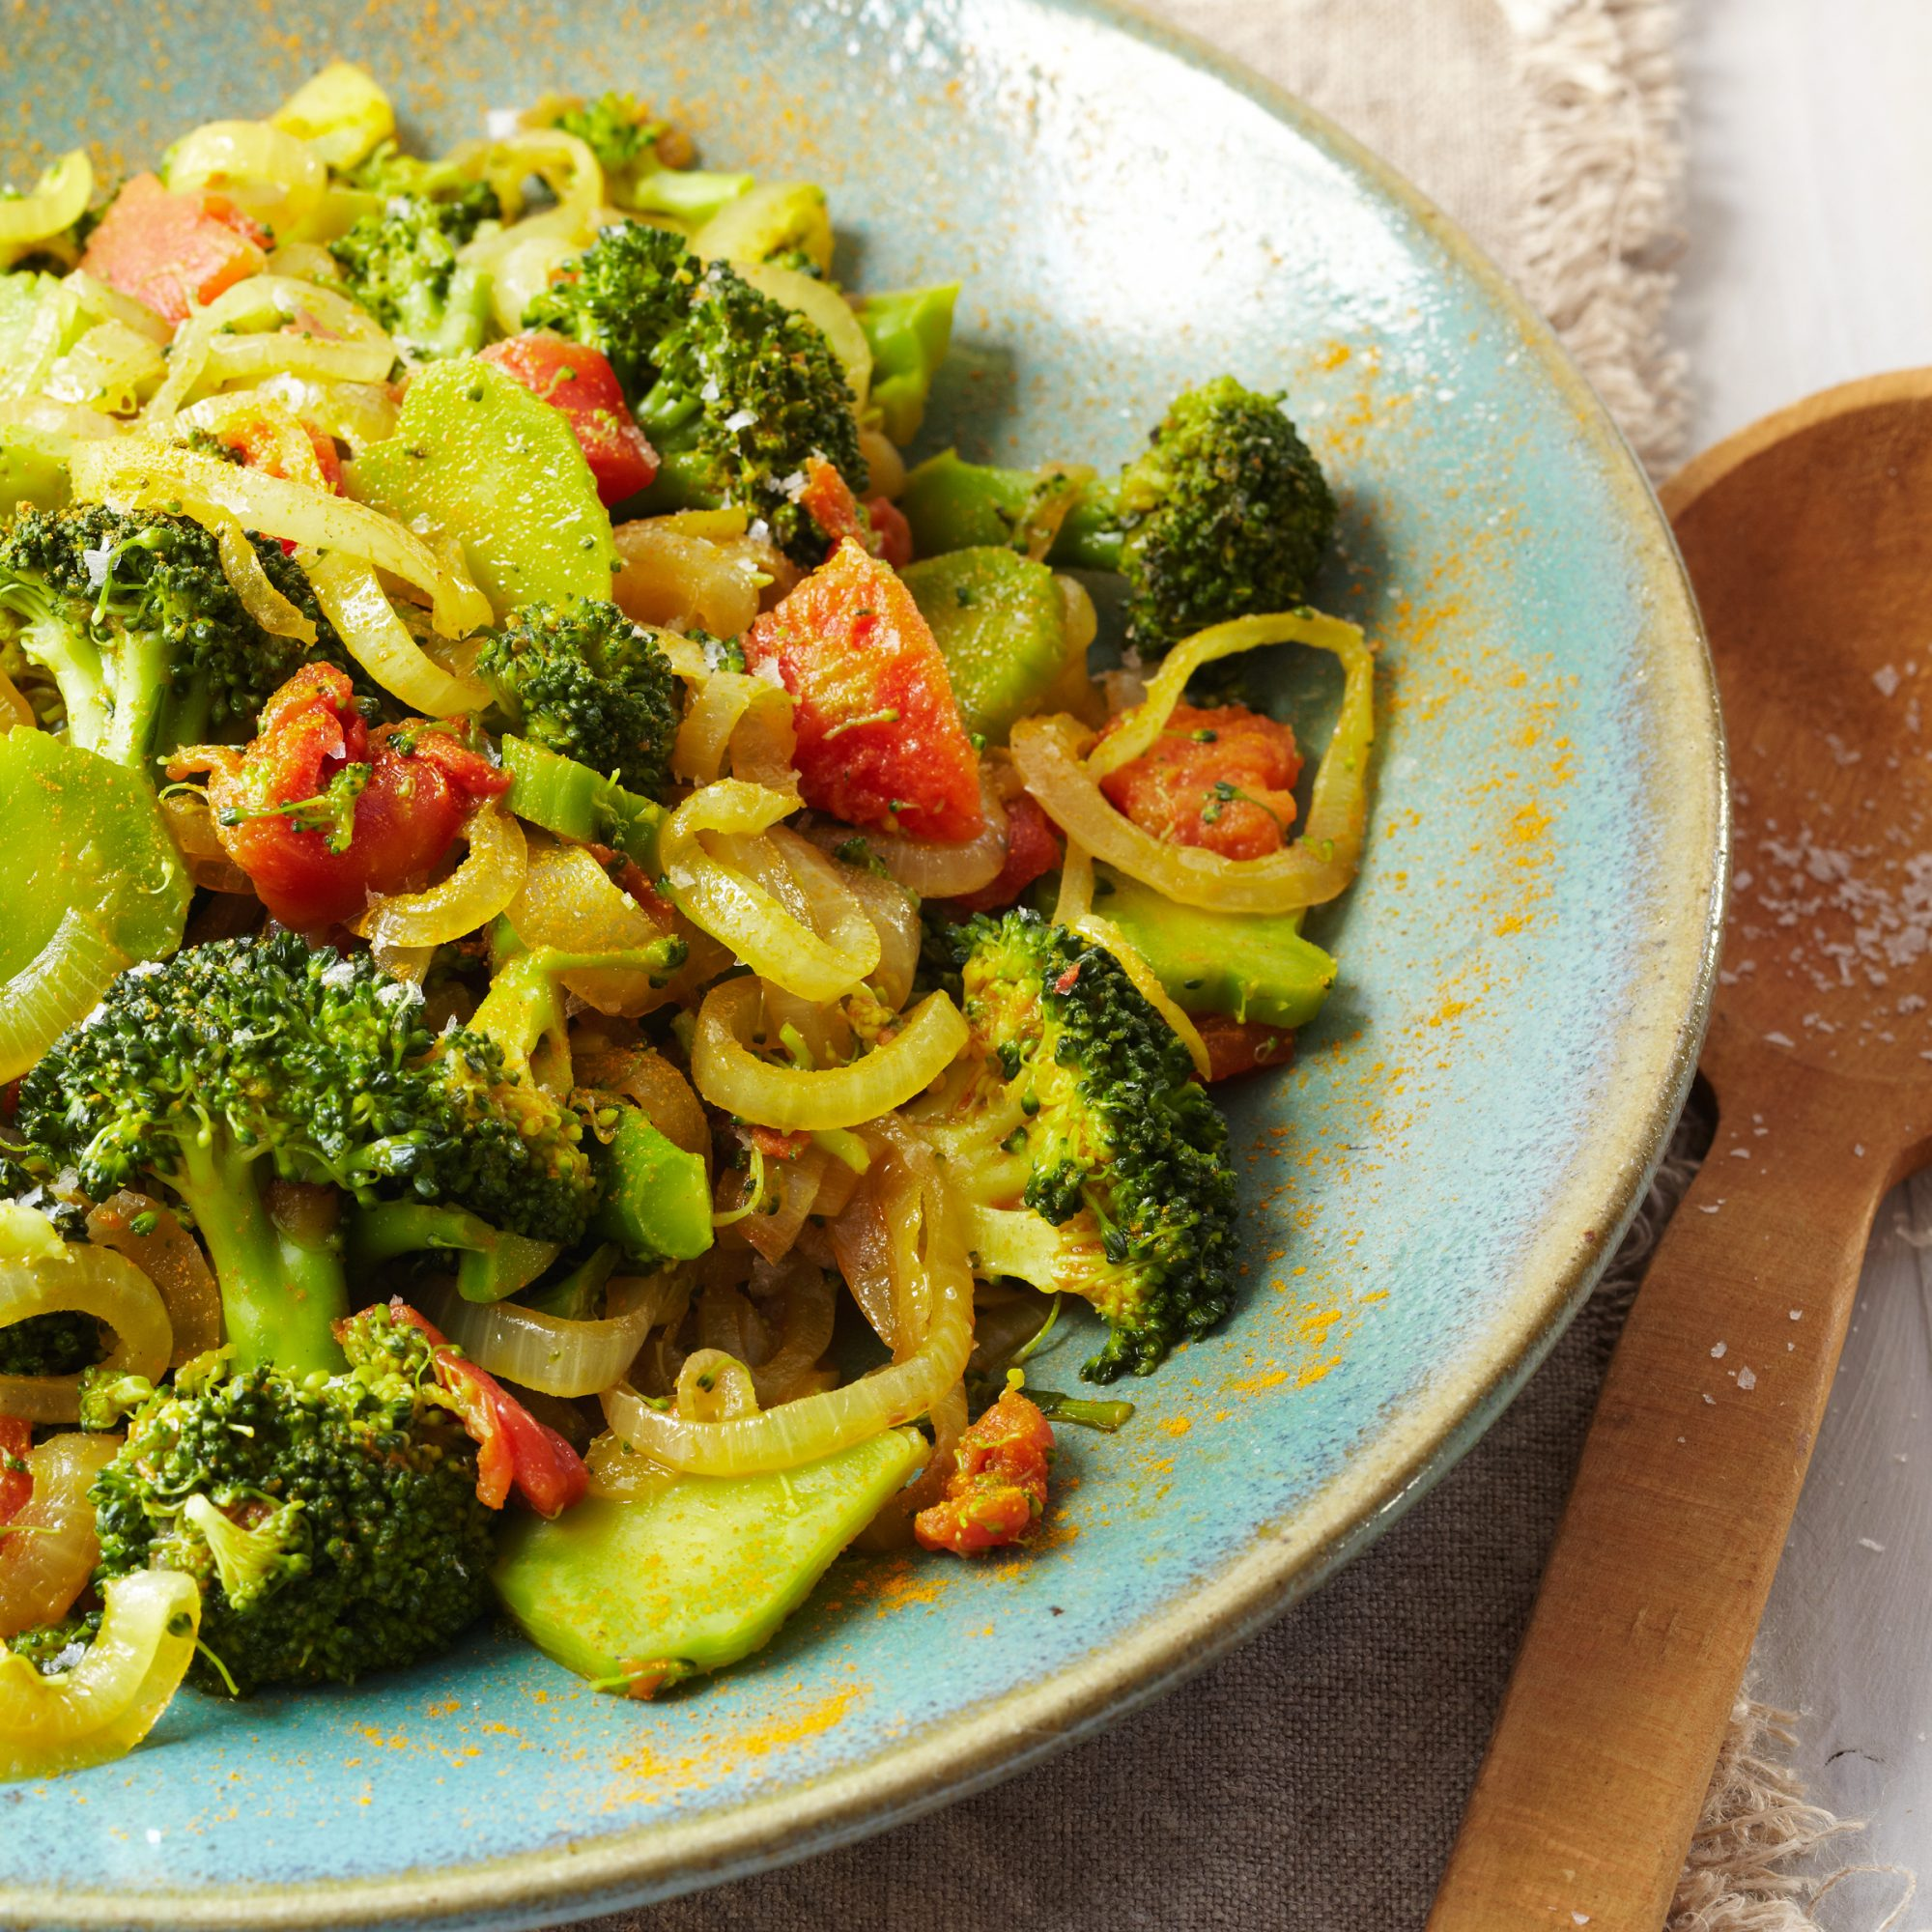 Broccoli with Turmeric and Tomatoes